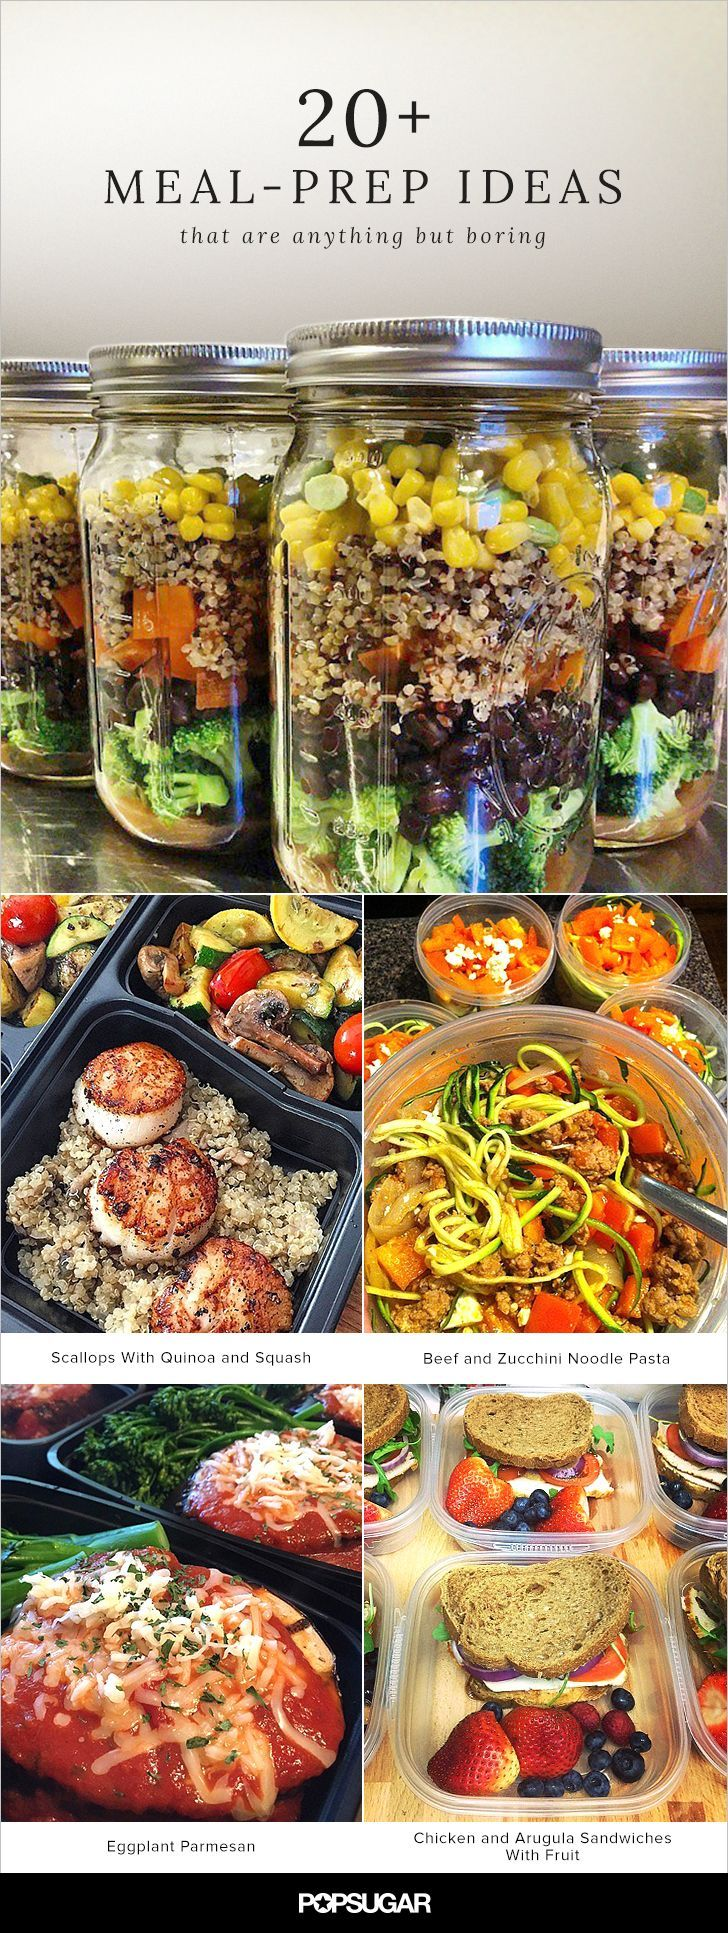 Do you #MealPrep? Meal prepping, or making your weekly breakfasts, lunches, and sometimes dinners ahead of time, is the craze sweeping the nation. Many self-confessed meal preppers often take to Instagram to show off their ingenuity and handiwork. People on special diets, such as Paleo or those on Weight Watchers, have long enjoyed meal prepping, since it can be hard to pick up dishes that conform to their strict needs on a whim.